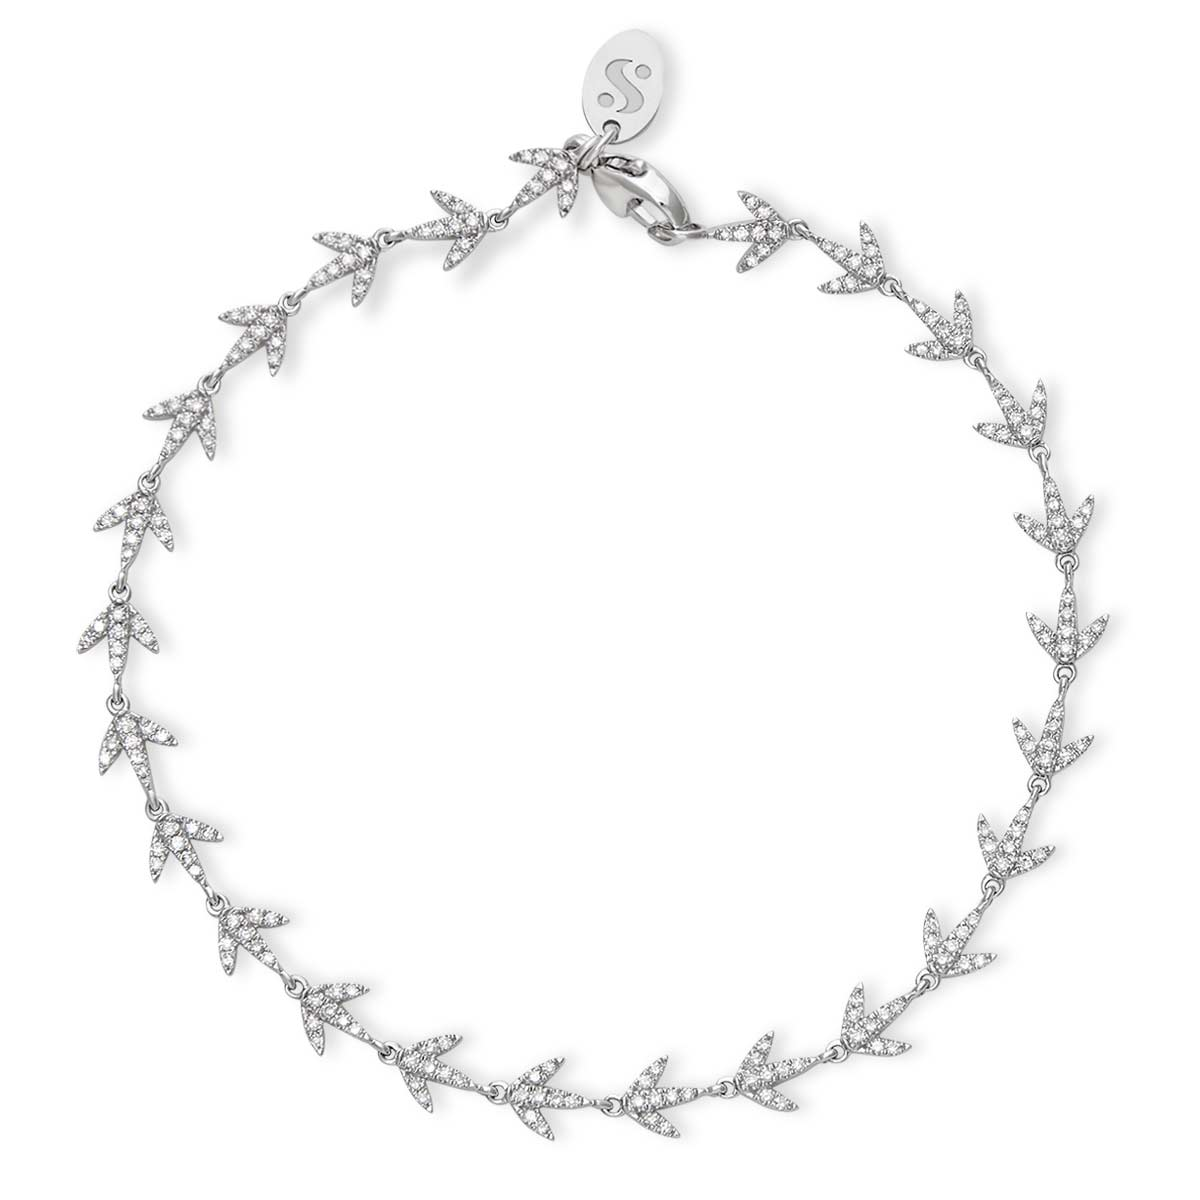 Diamond Path Bracelet - Serena Williams Jewelry